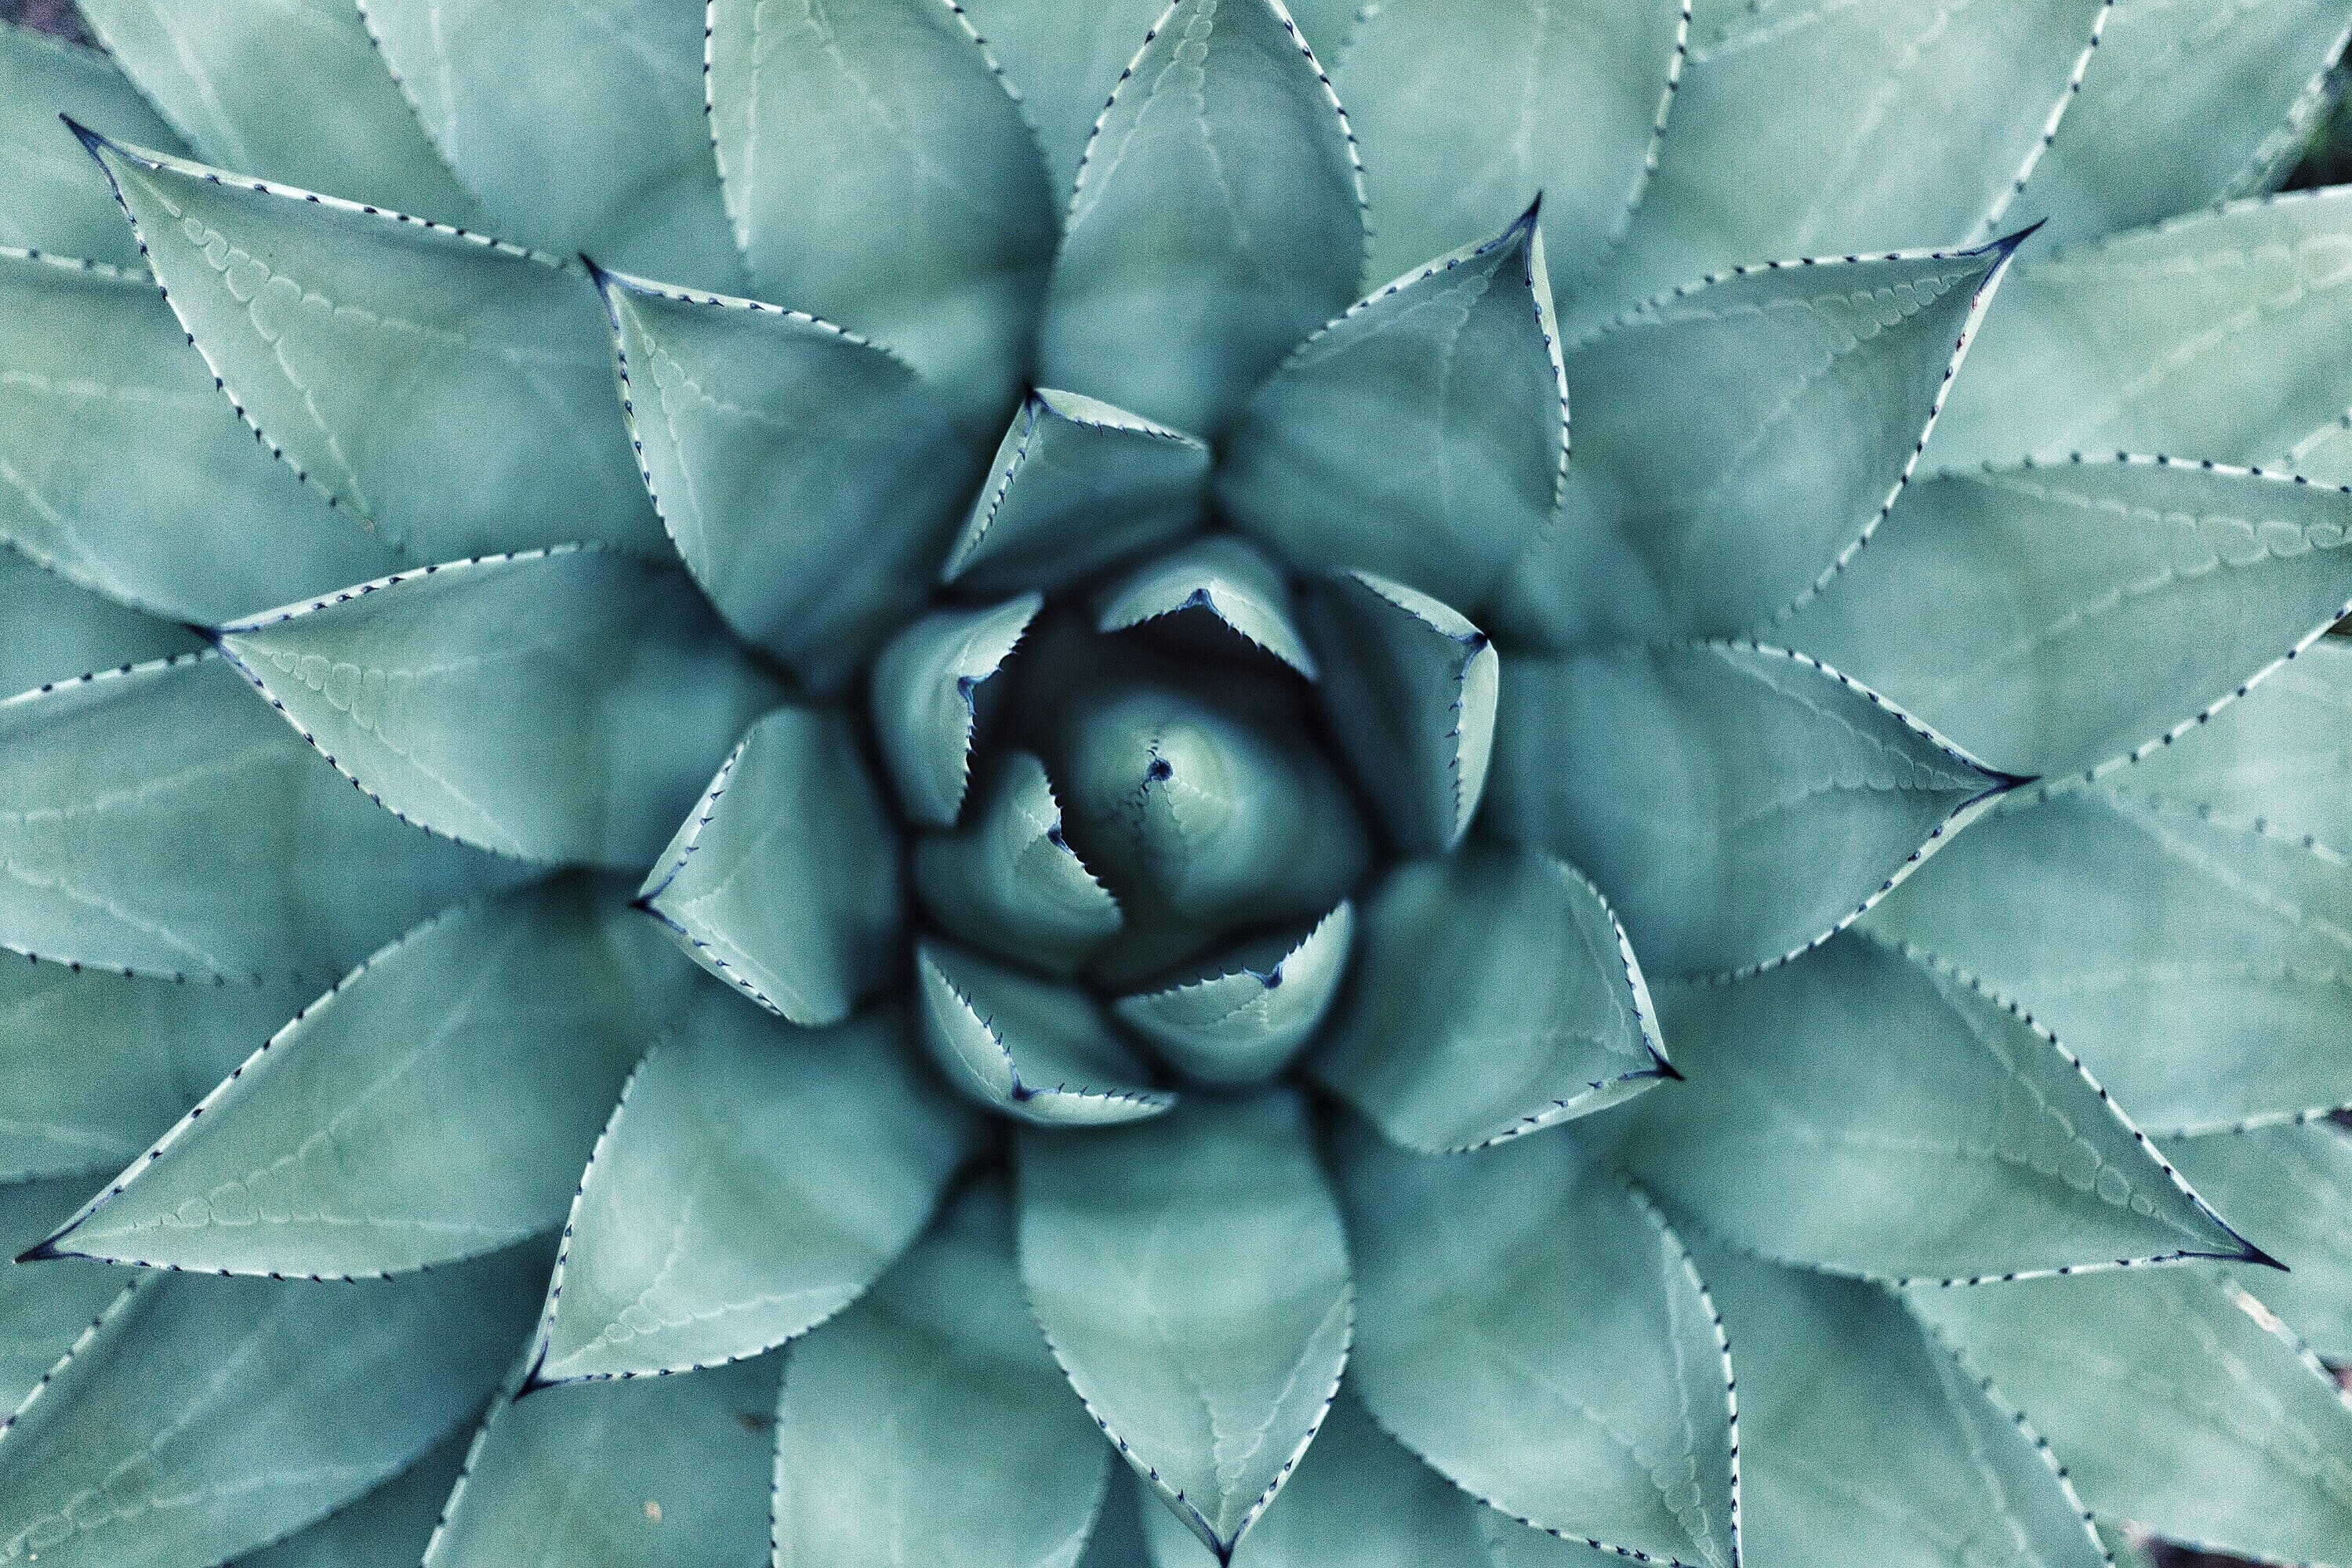 A macro shot of the center of a green succulent